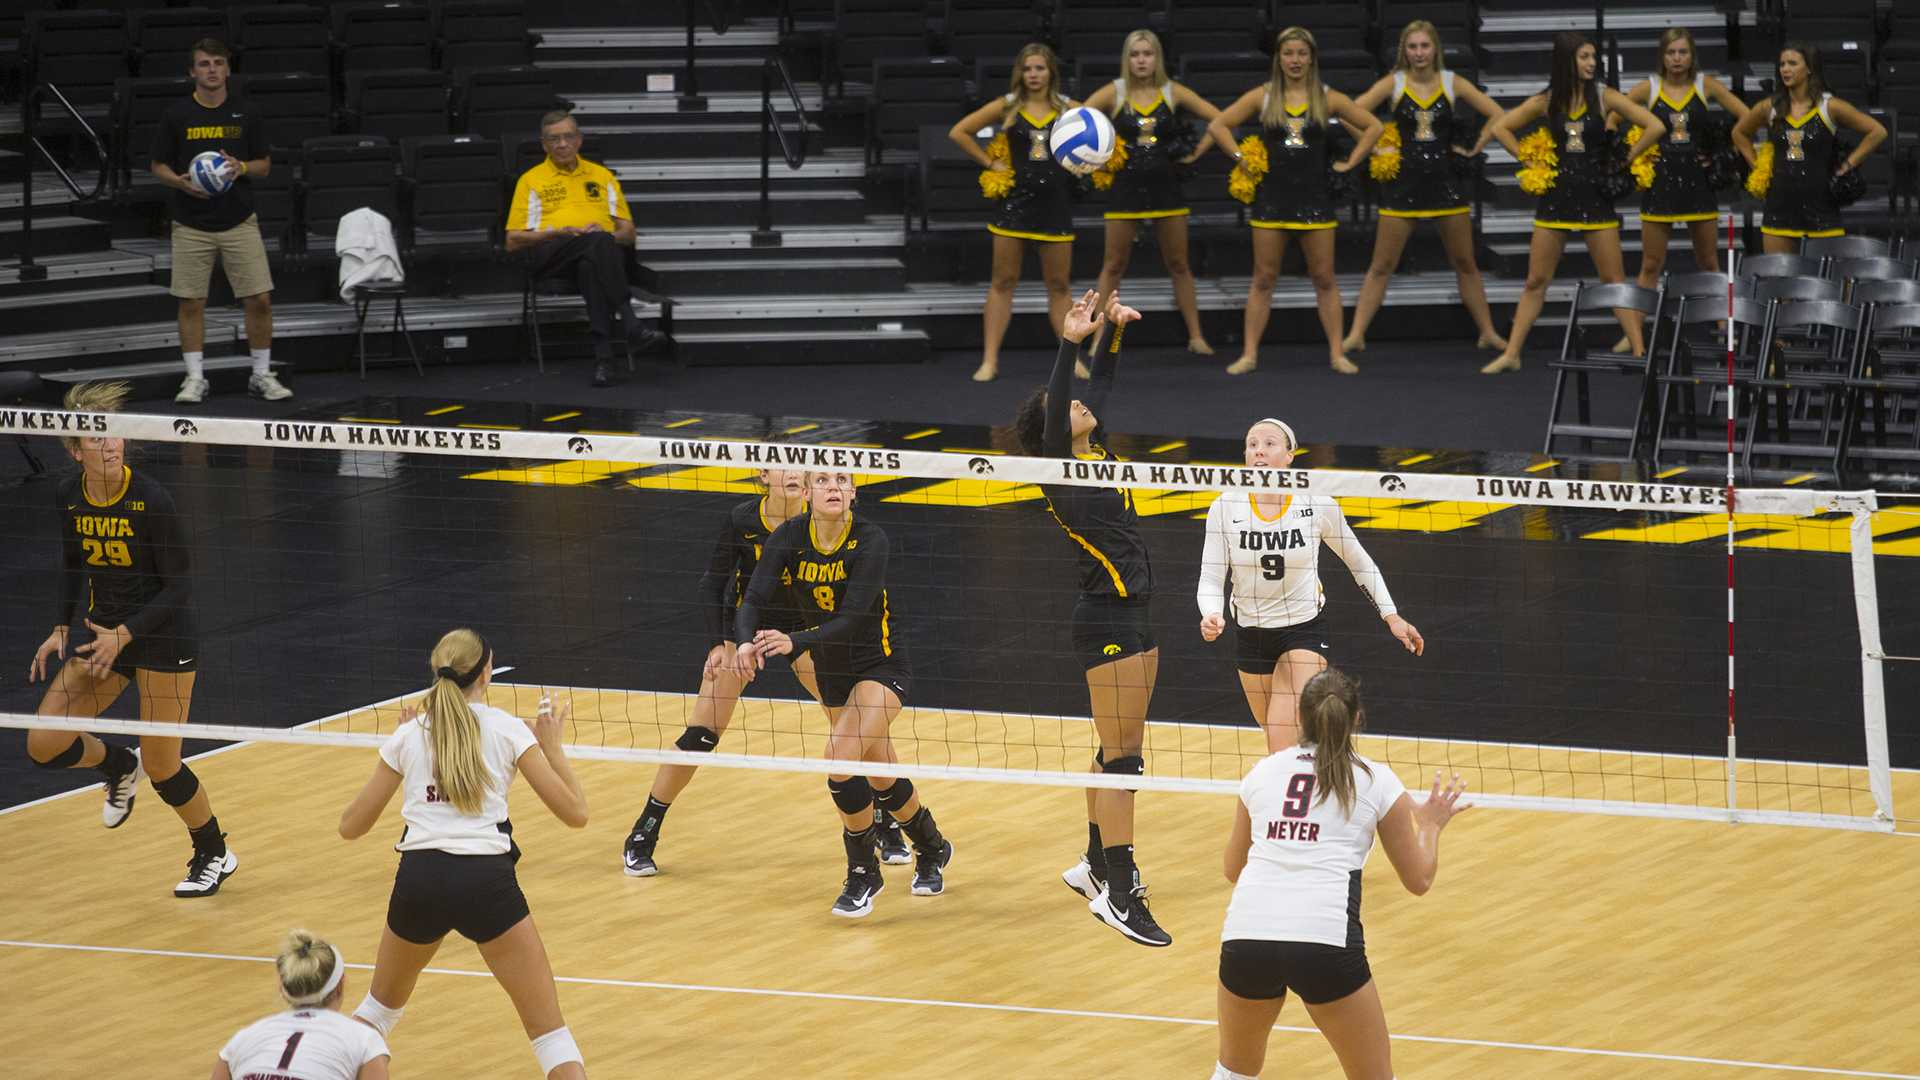 Iowa's Brie Orr sets the ball during a volleyball match against University of Nebraska-Omaha at Carver-Hawkeye Arena on Friday, Sep. 1, 2017. The Hawkeyes swept the match against the Mavericks, 3 sets to 0. (Lily Smith/The Daily Iowan)